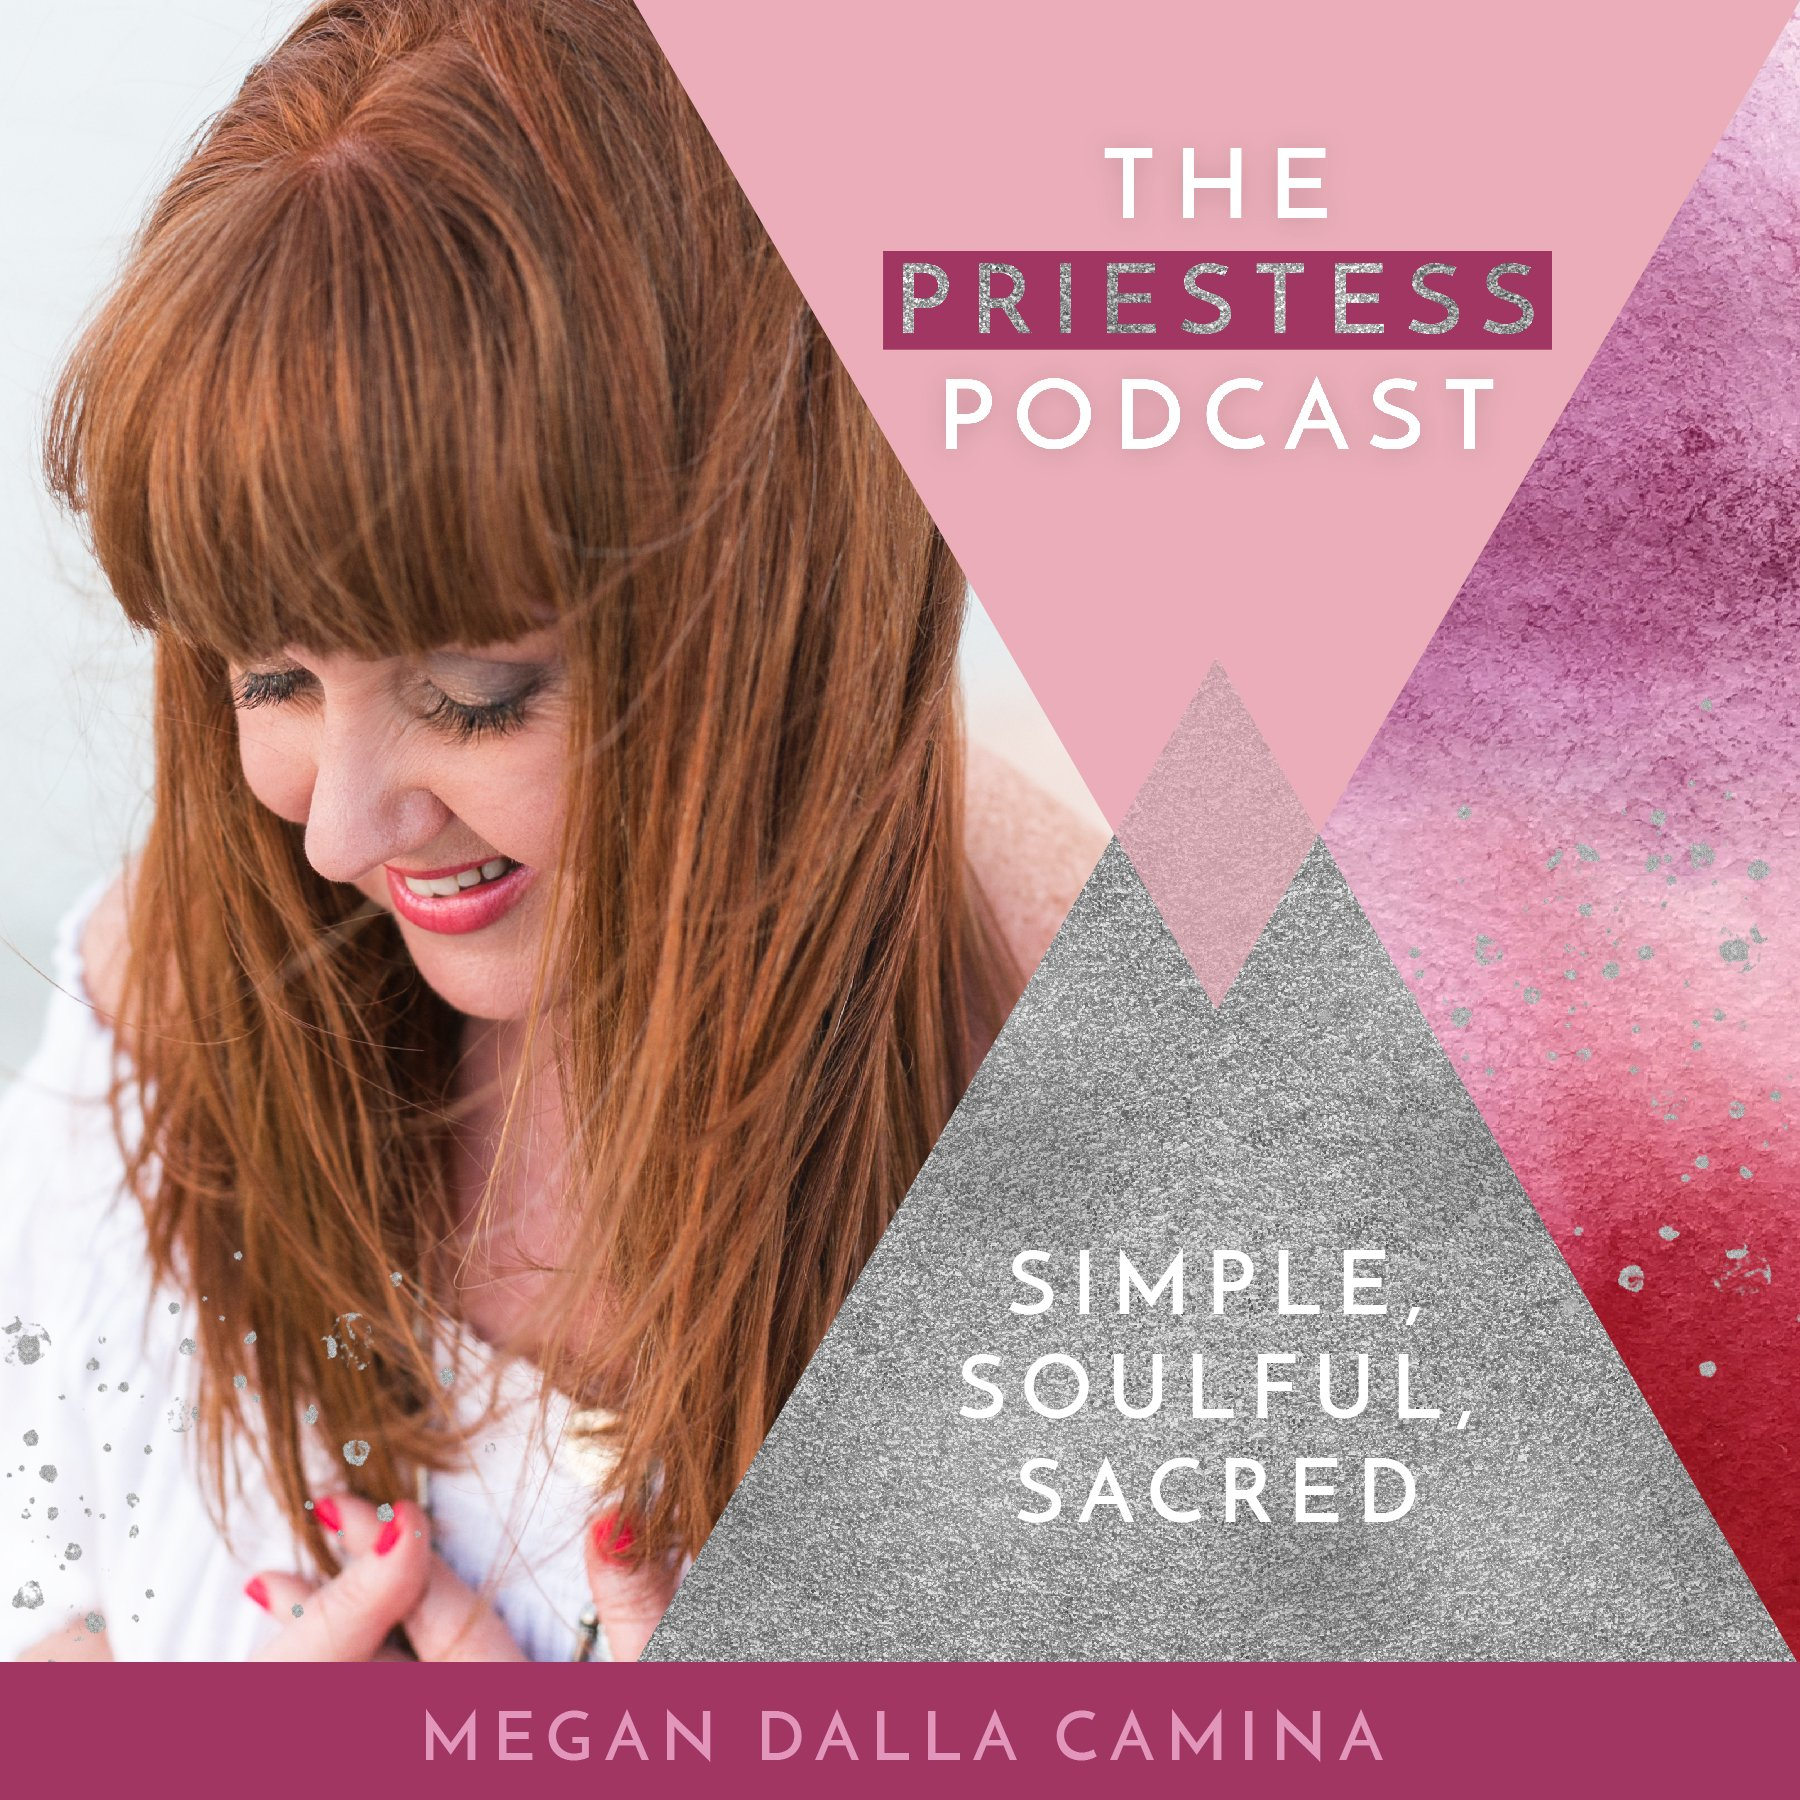 Megan Dalla-Camina on Simple, Soulful, Sacred